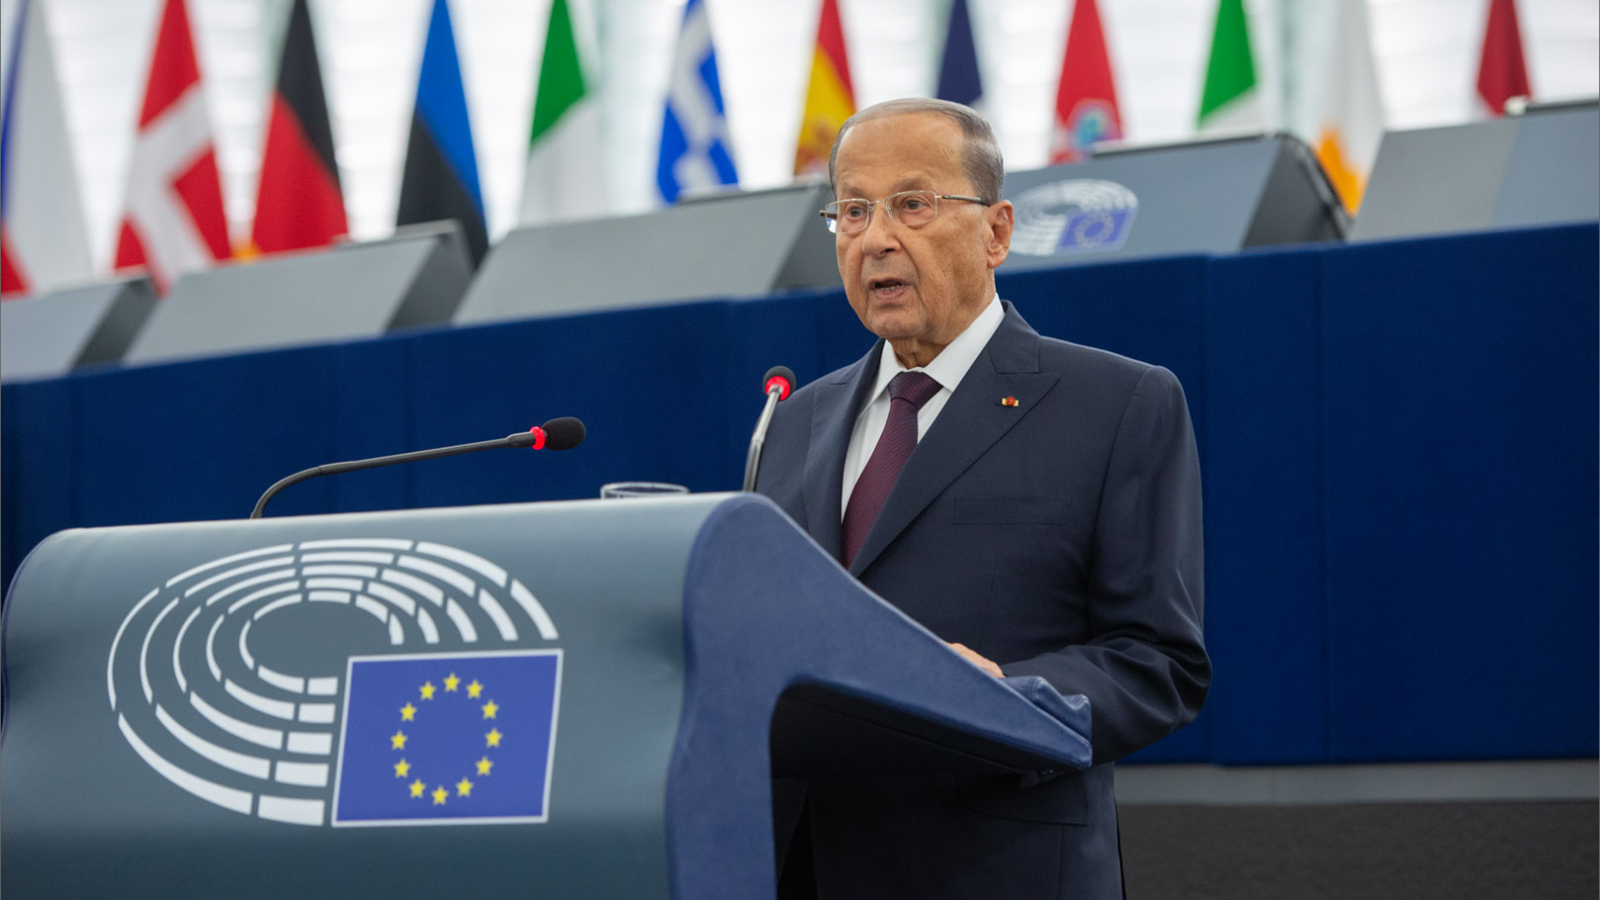 Lebanese President Michel Aoun addressed MEPs in Strasbourg on Tuesday